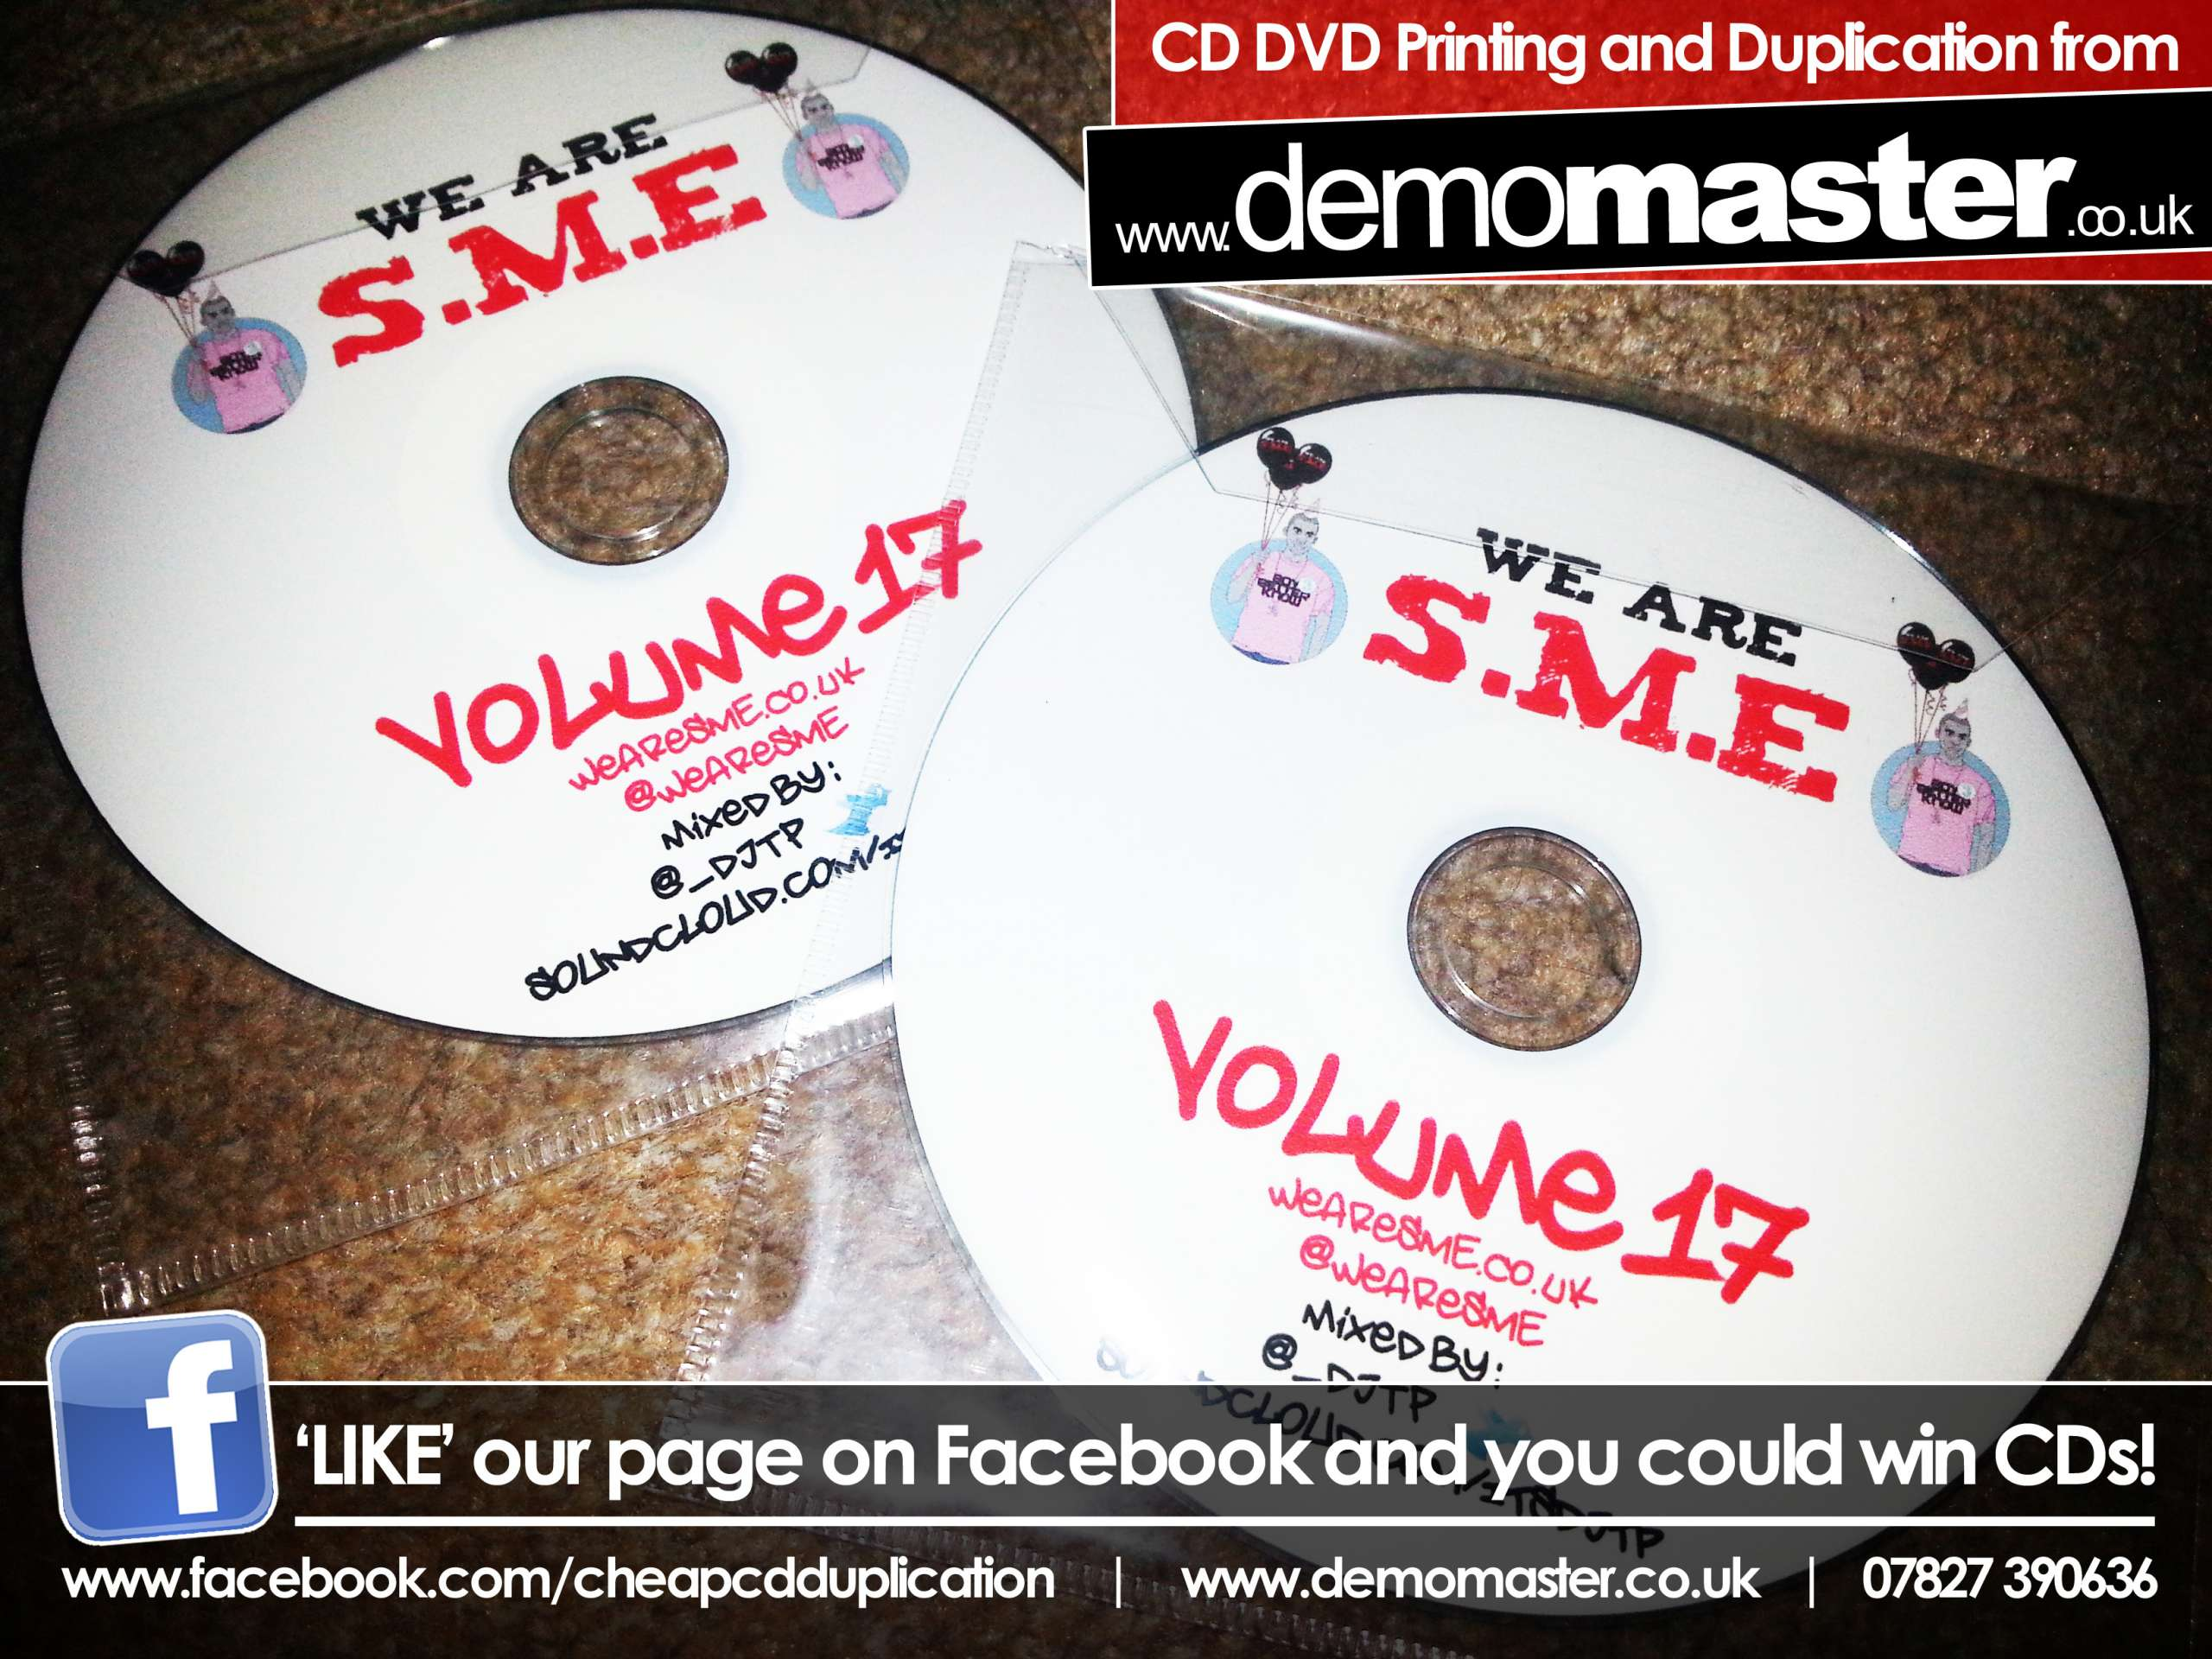 We Are S.M.E. Volume 17 mixed by DJ TP